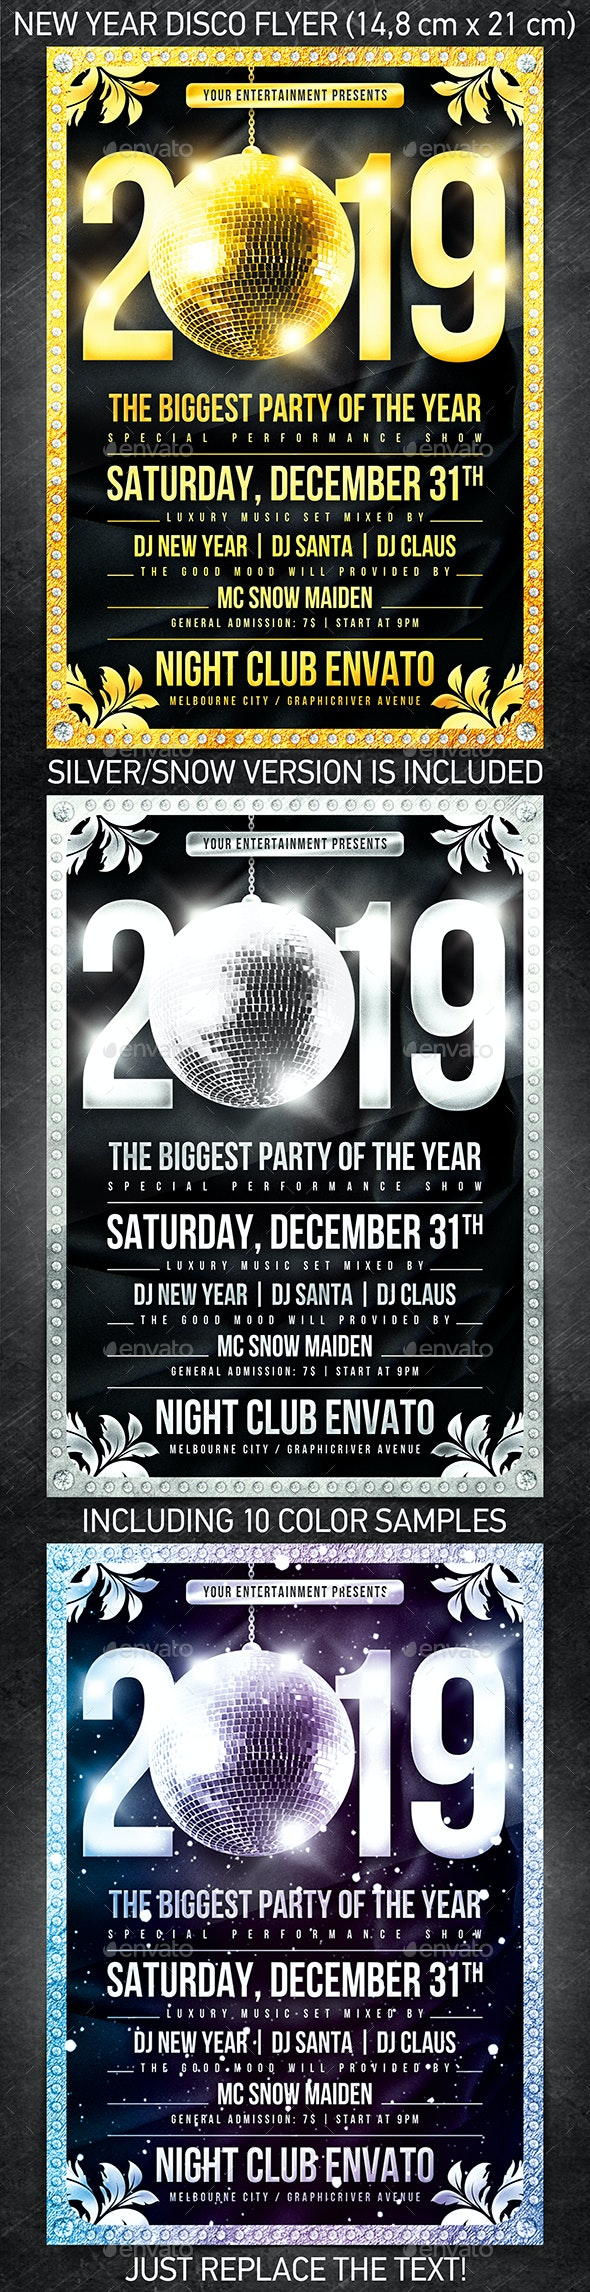 New Year Disco Flyer #1 - Print Templates